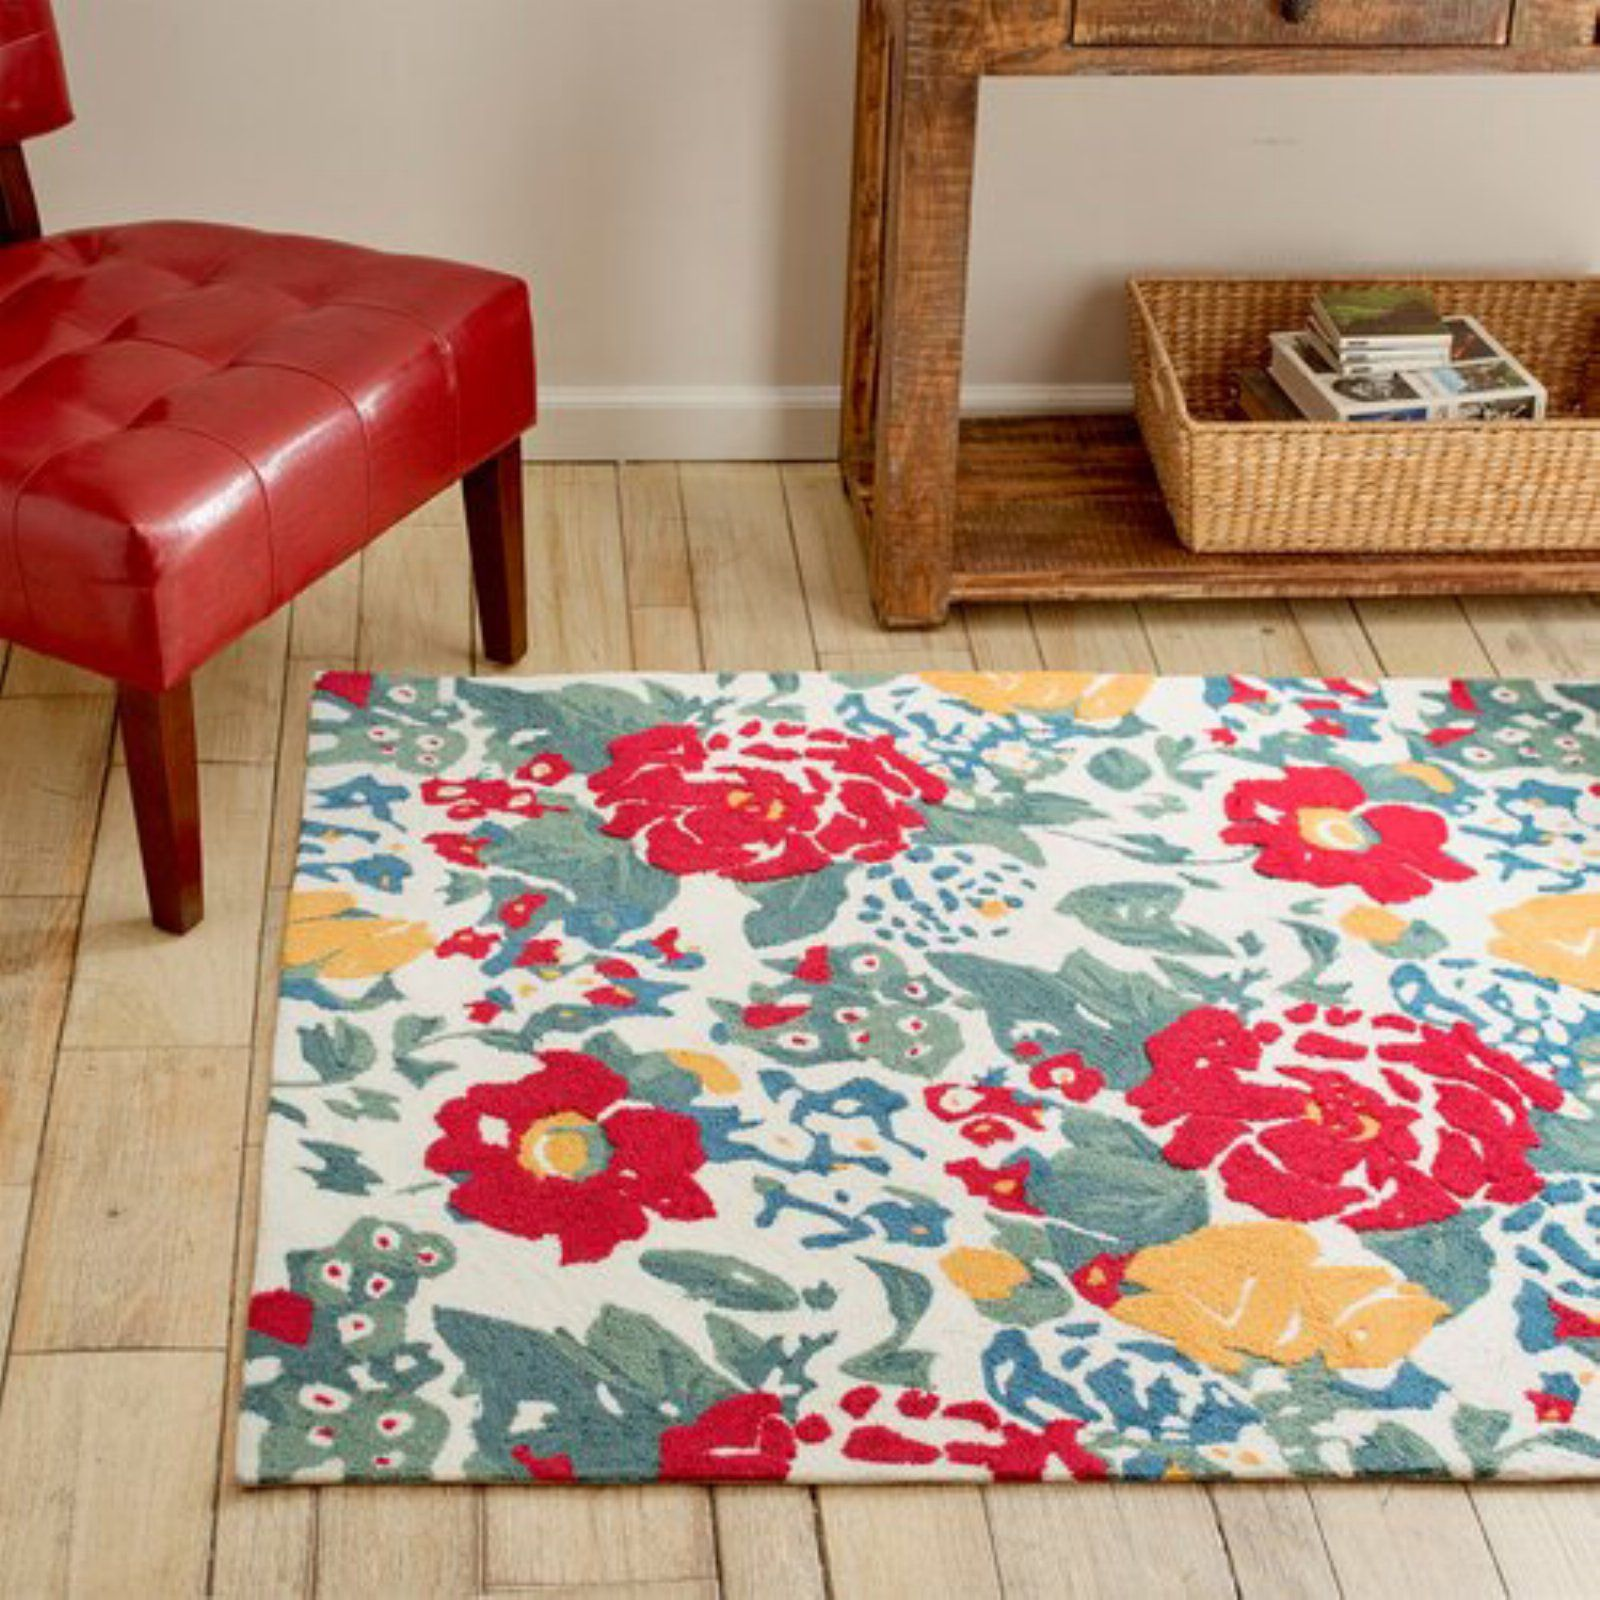 Country Garden Rug By The Pioneer Woman Pioneer Woman Kitchen Decor Pioneer Woman Kitchen Decor